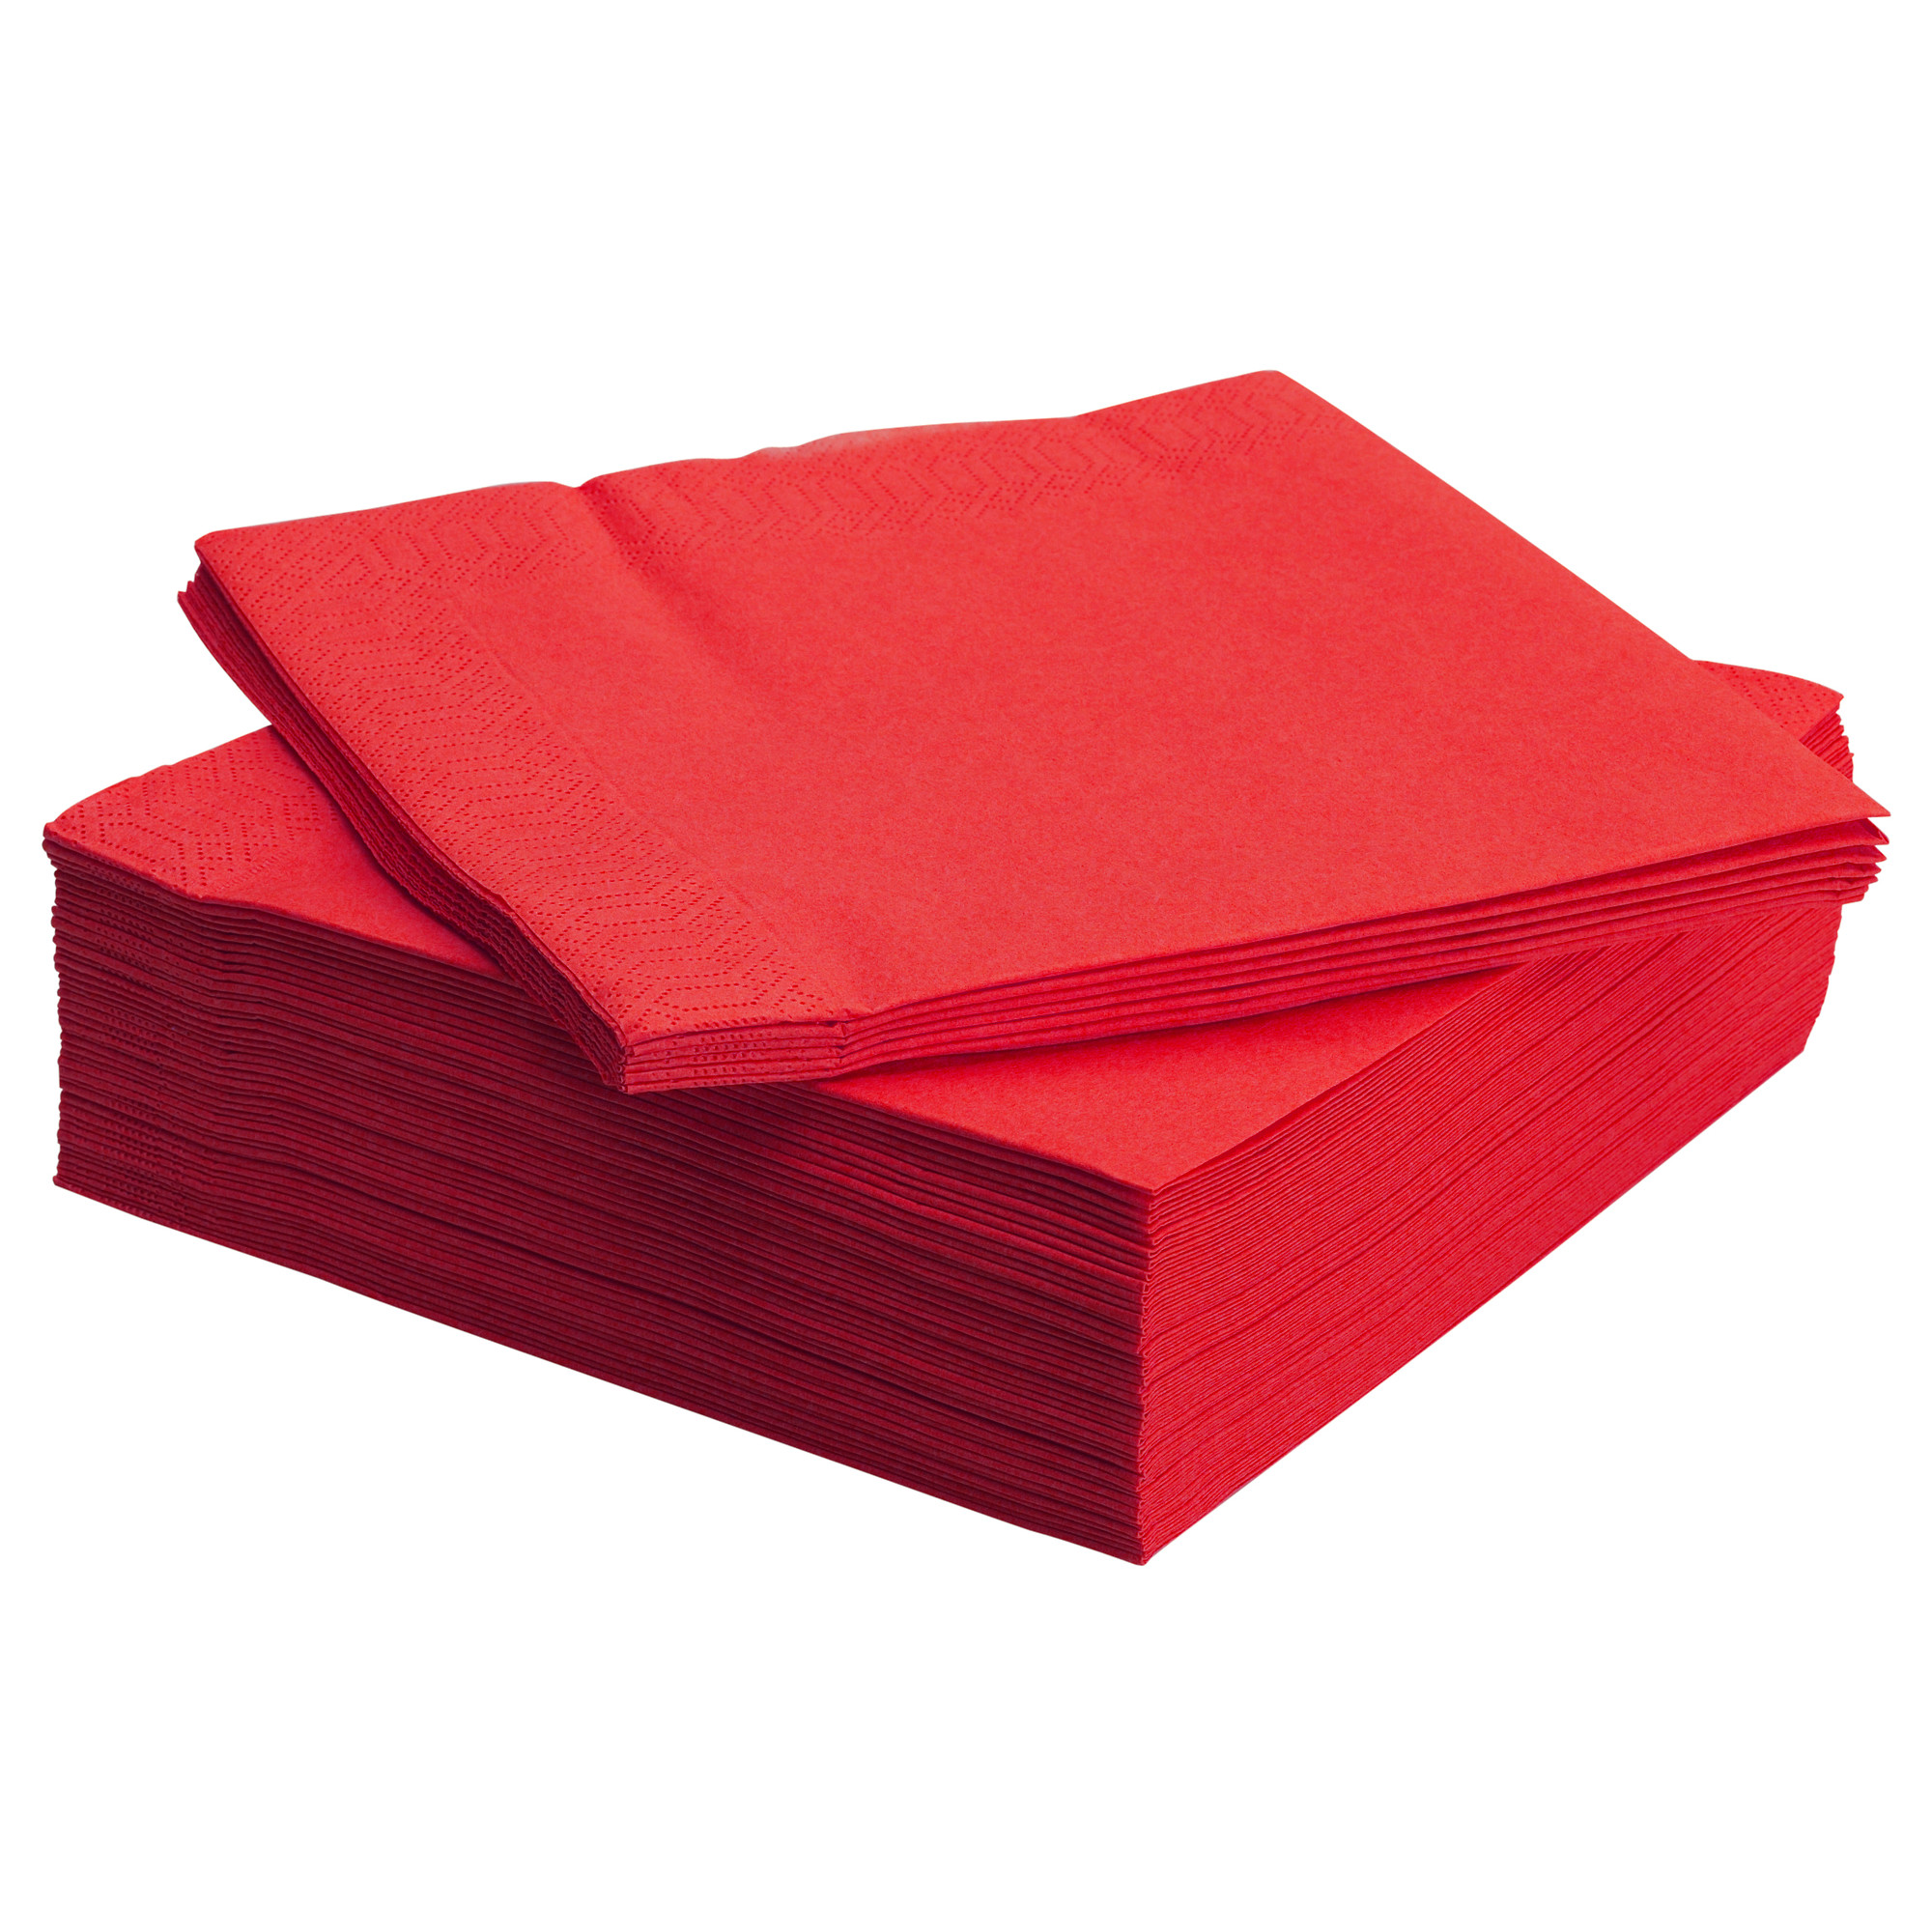 Napkins, Placemats & Tablecloths